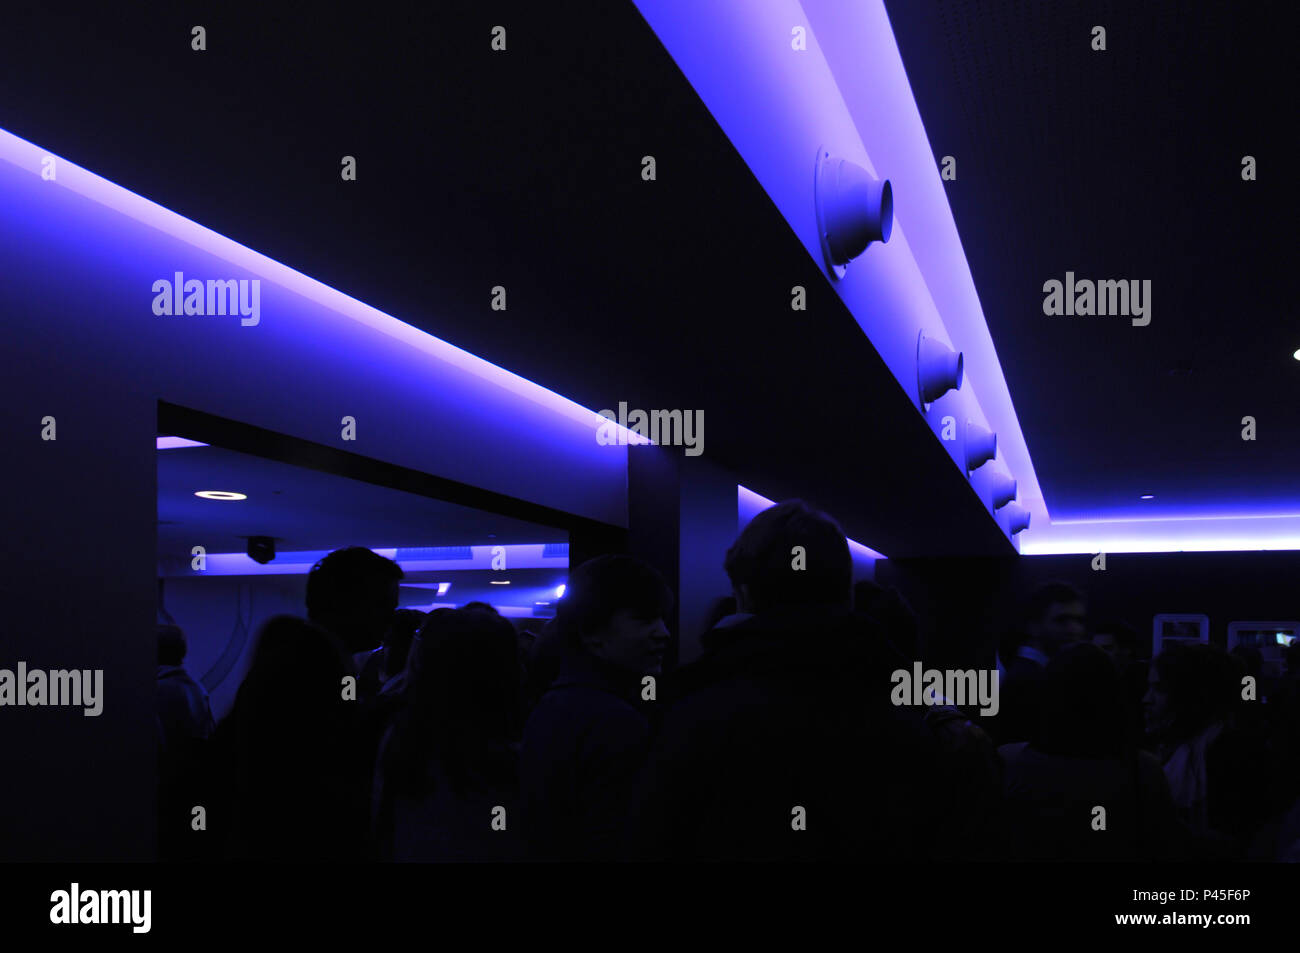 People in a nightclub with blacklight - ultraviolet light - Stock Image